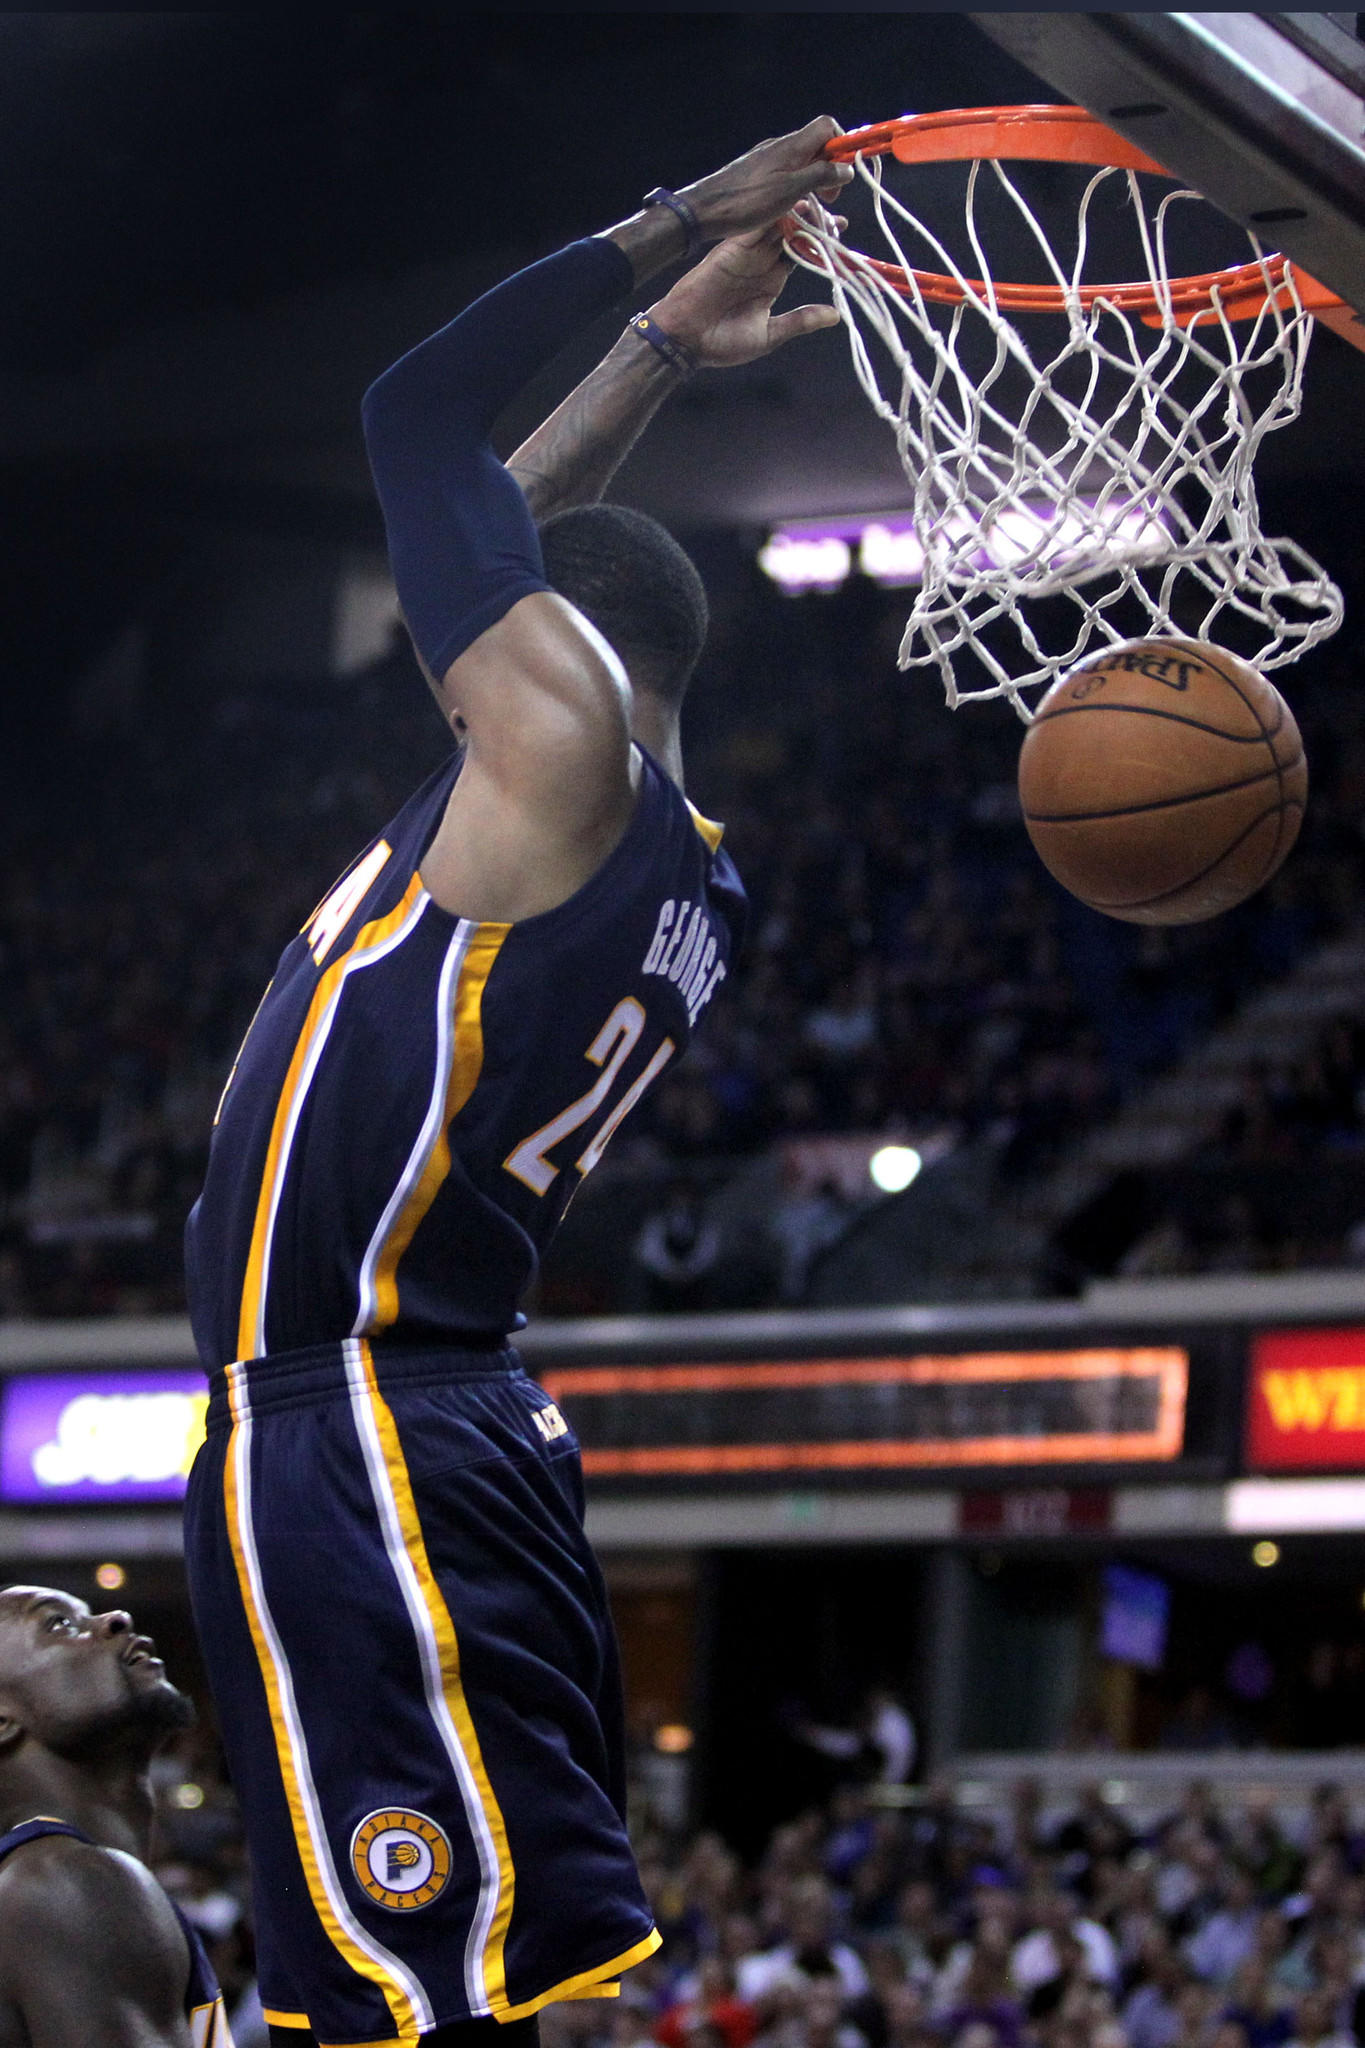 Indiana Pacers forward Paul George (24) dunks the ball against the Sacramento Kings in the second half of their NBA basketball game at Sleep Train Arena.